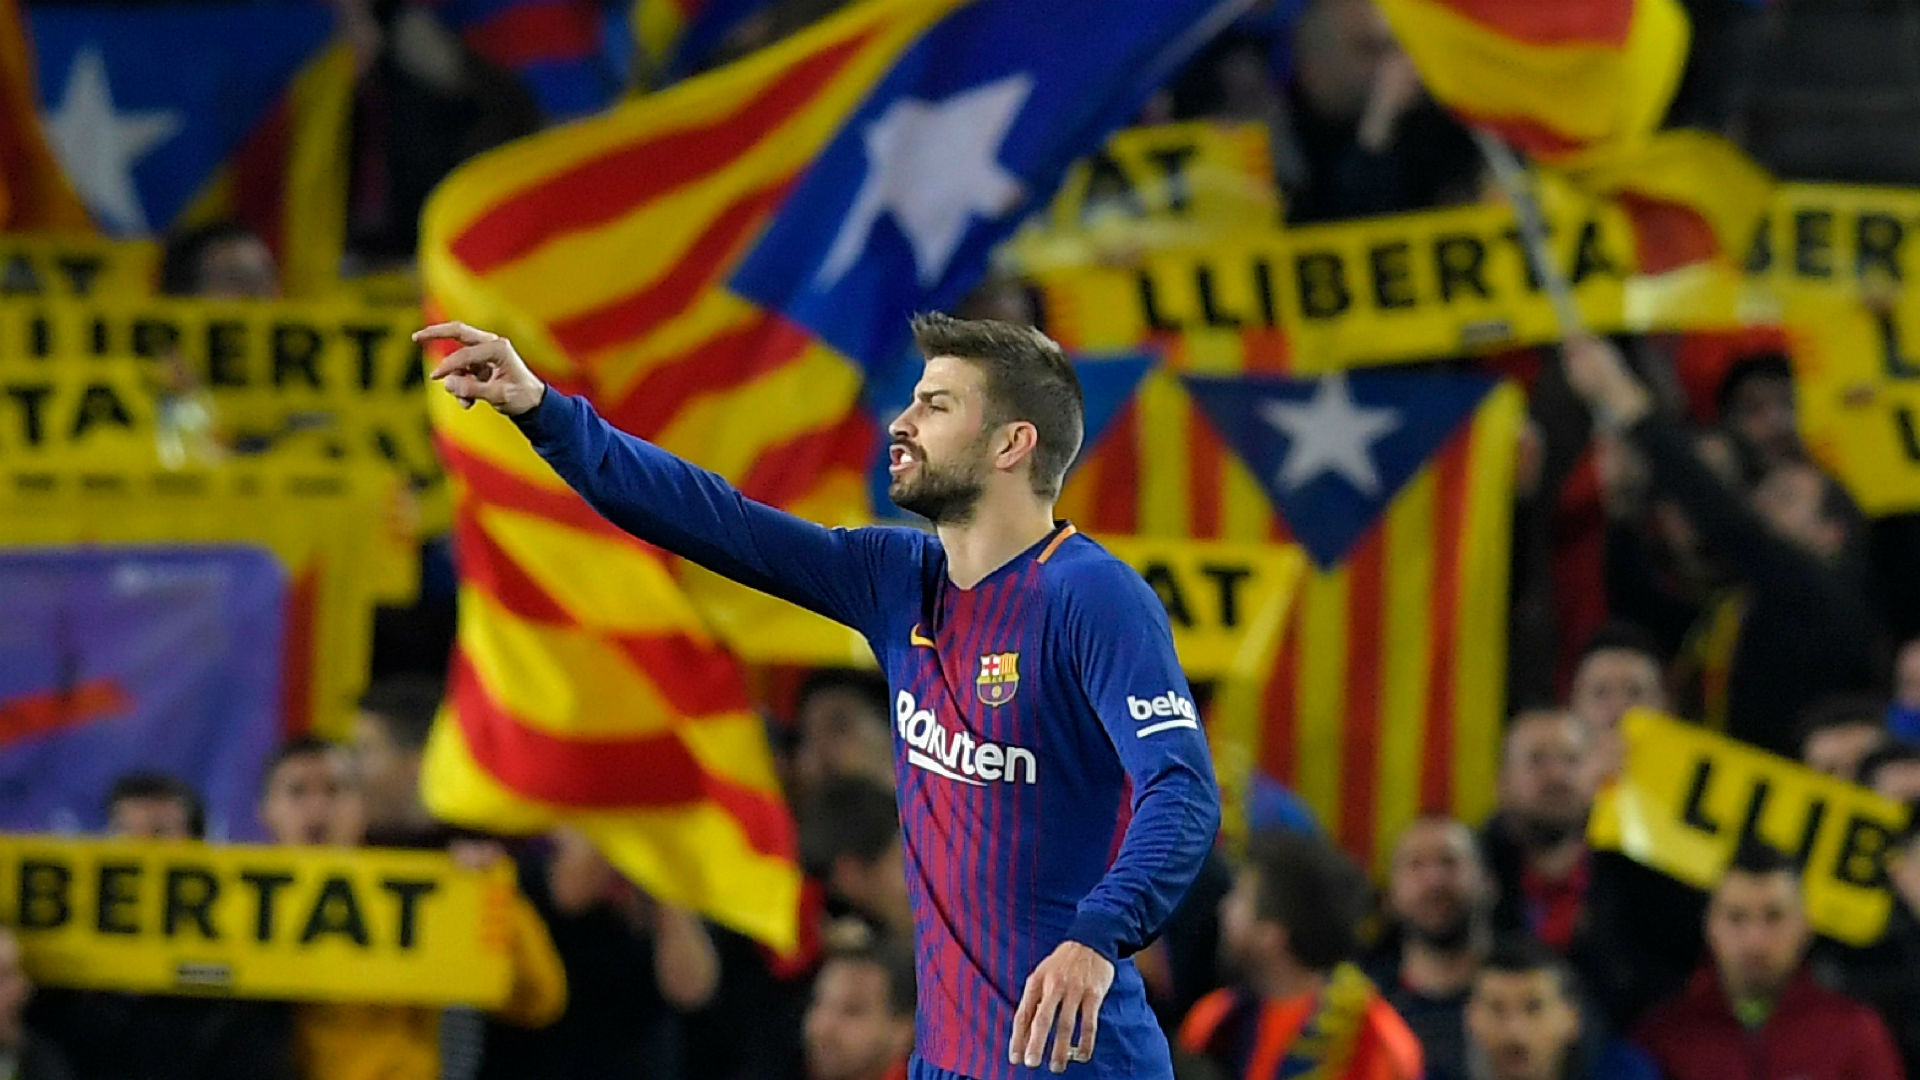 Gerard Pique Barcelona Catalan independence